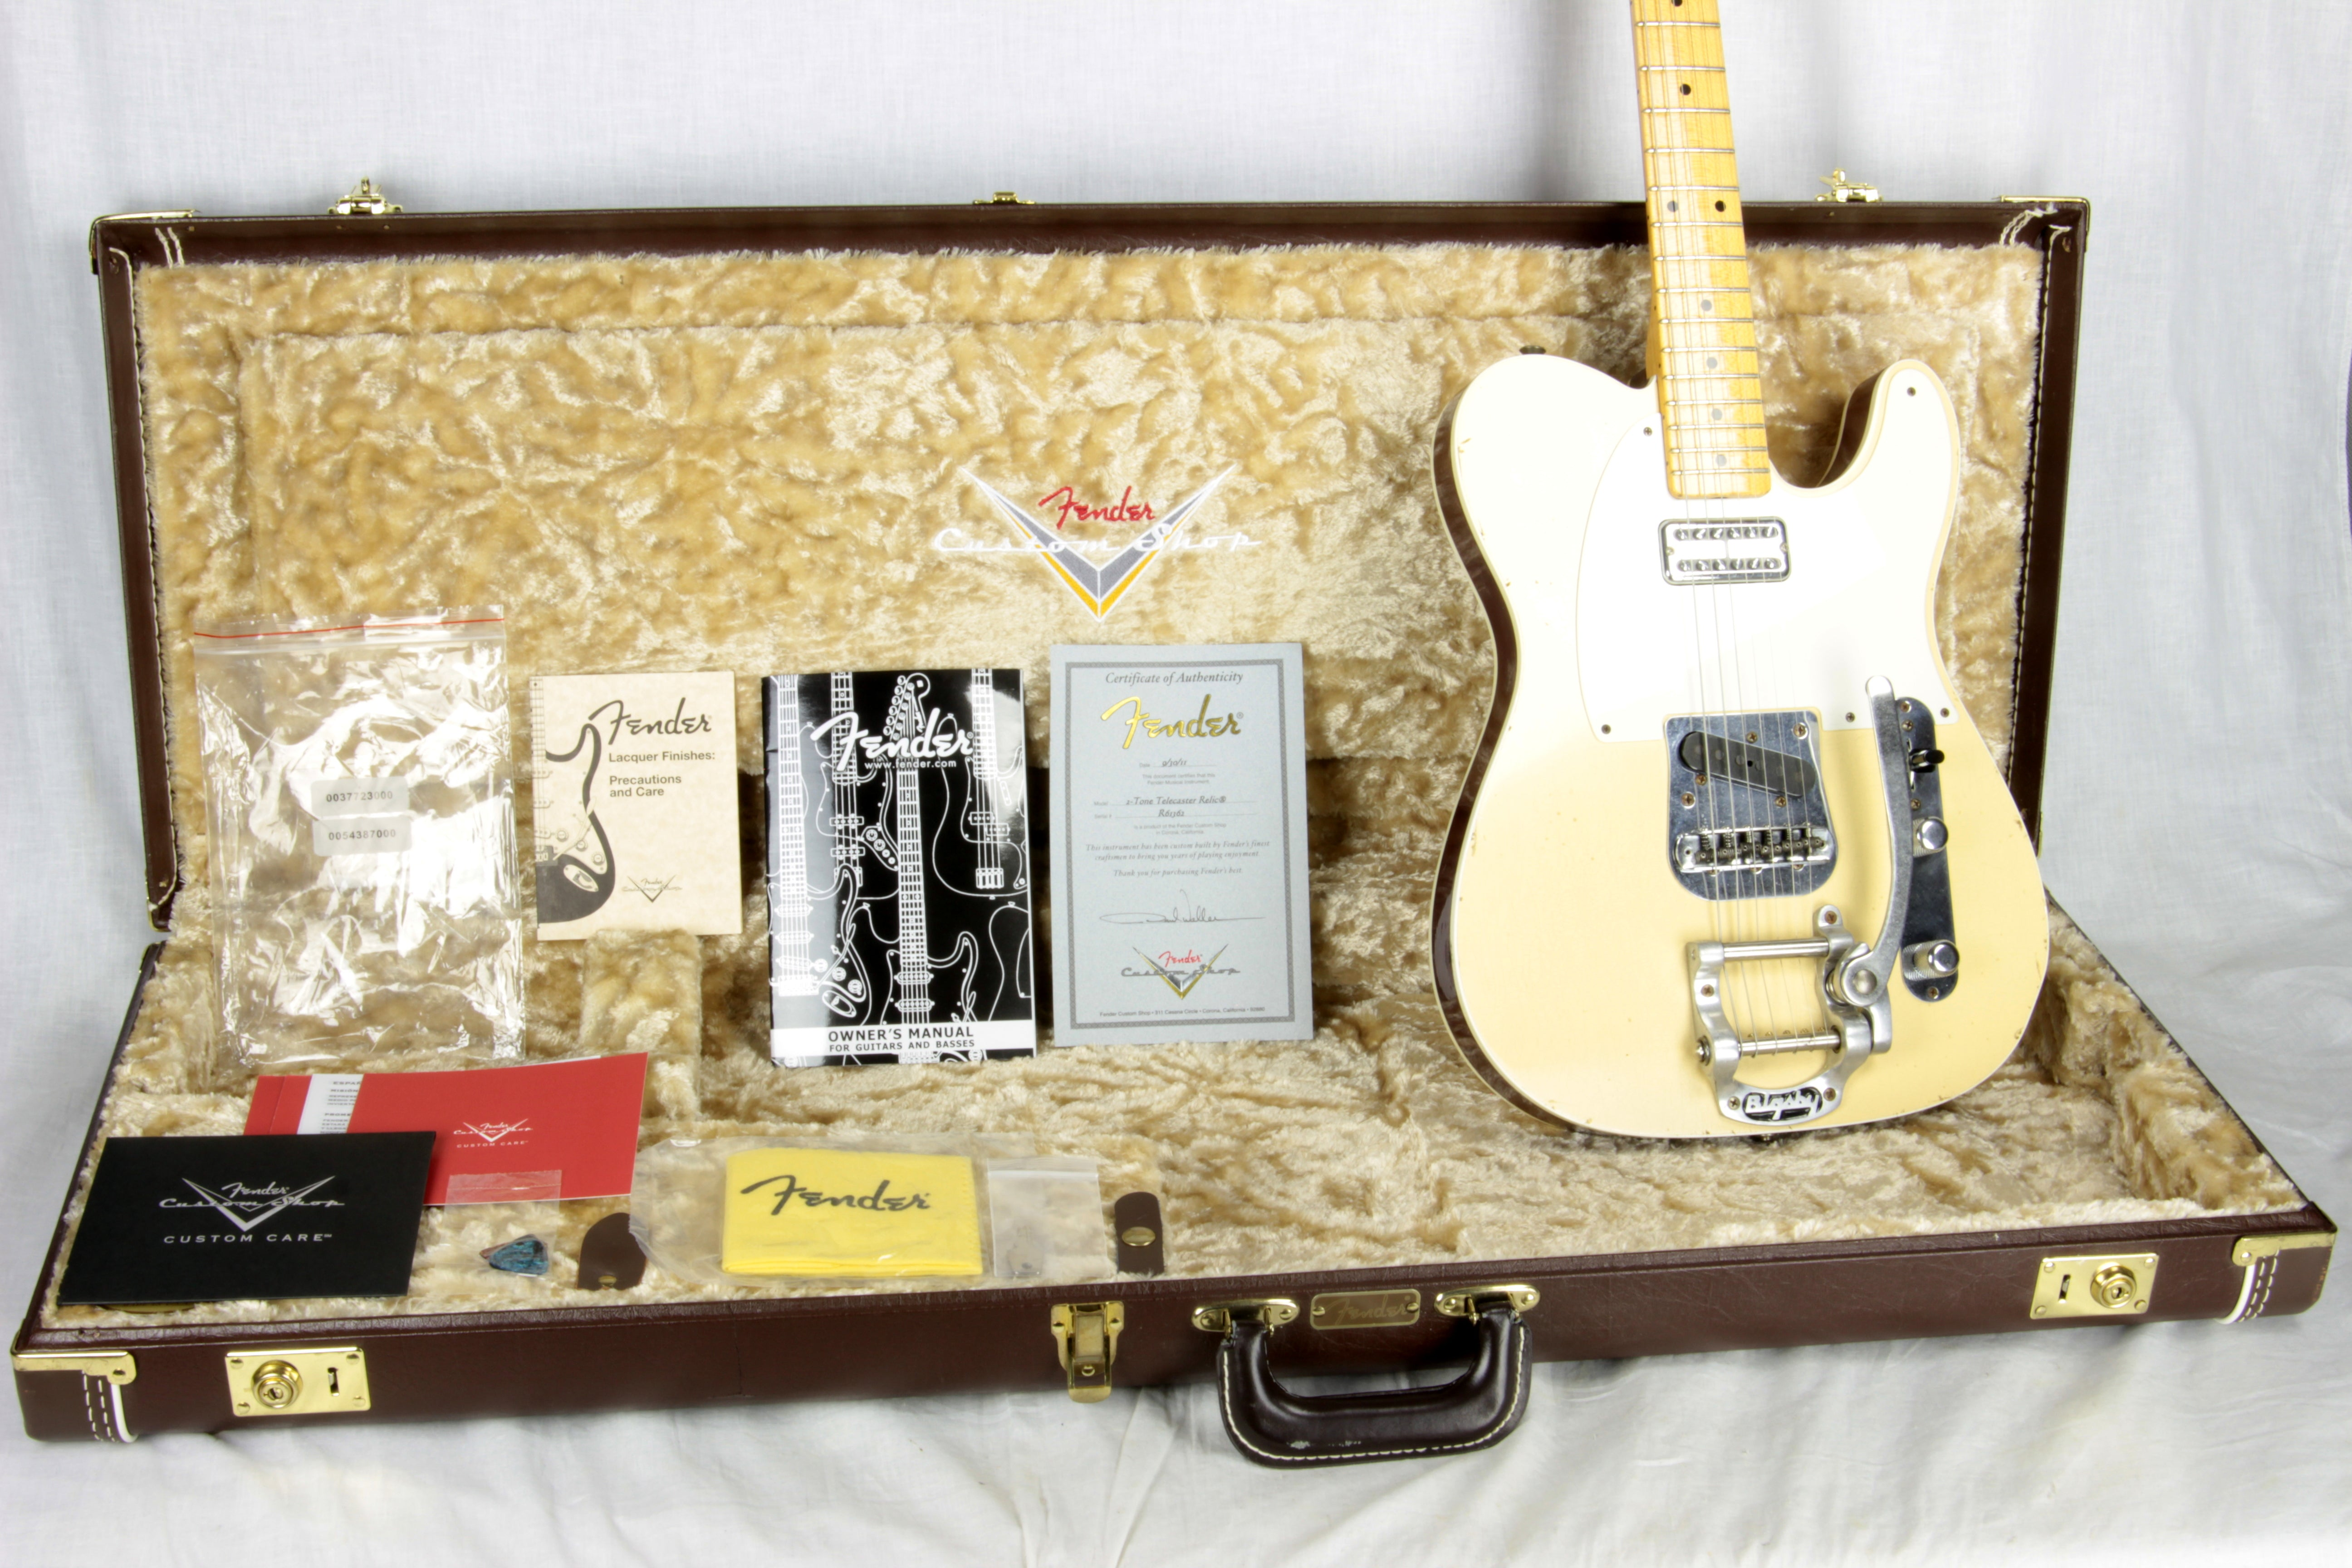 '52 Fender Custom Shop Masterbuilt PAUL WALLER Bigsby Telecaster 2-Tone DOUBLE-BOUND TV Jones